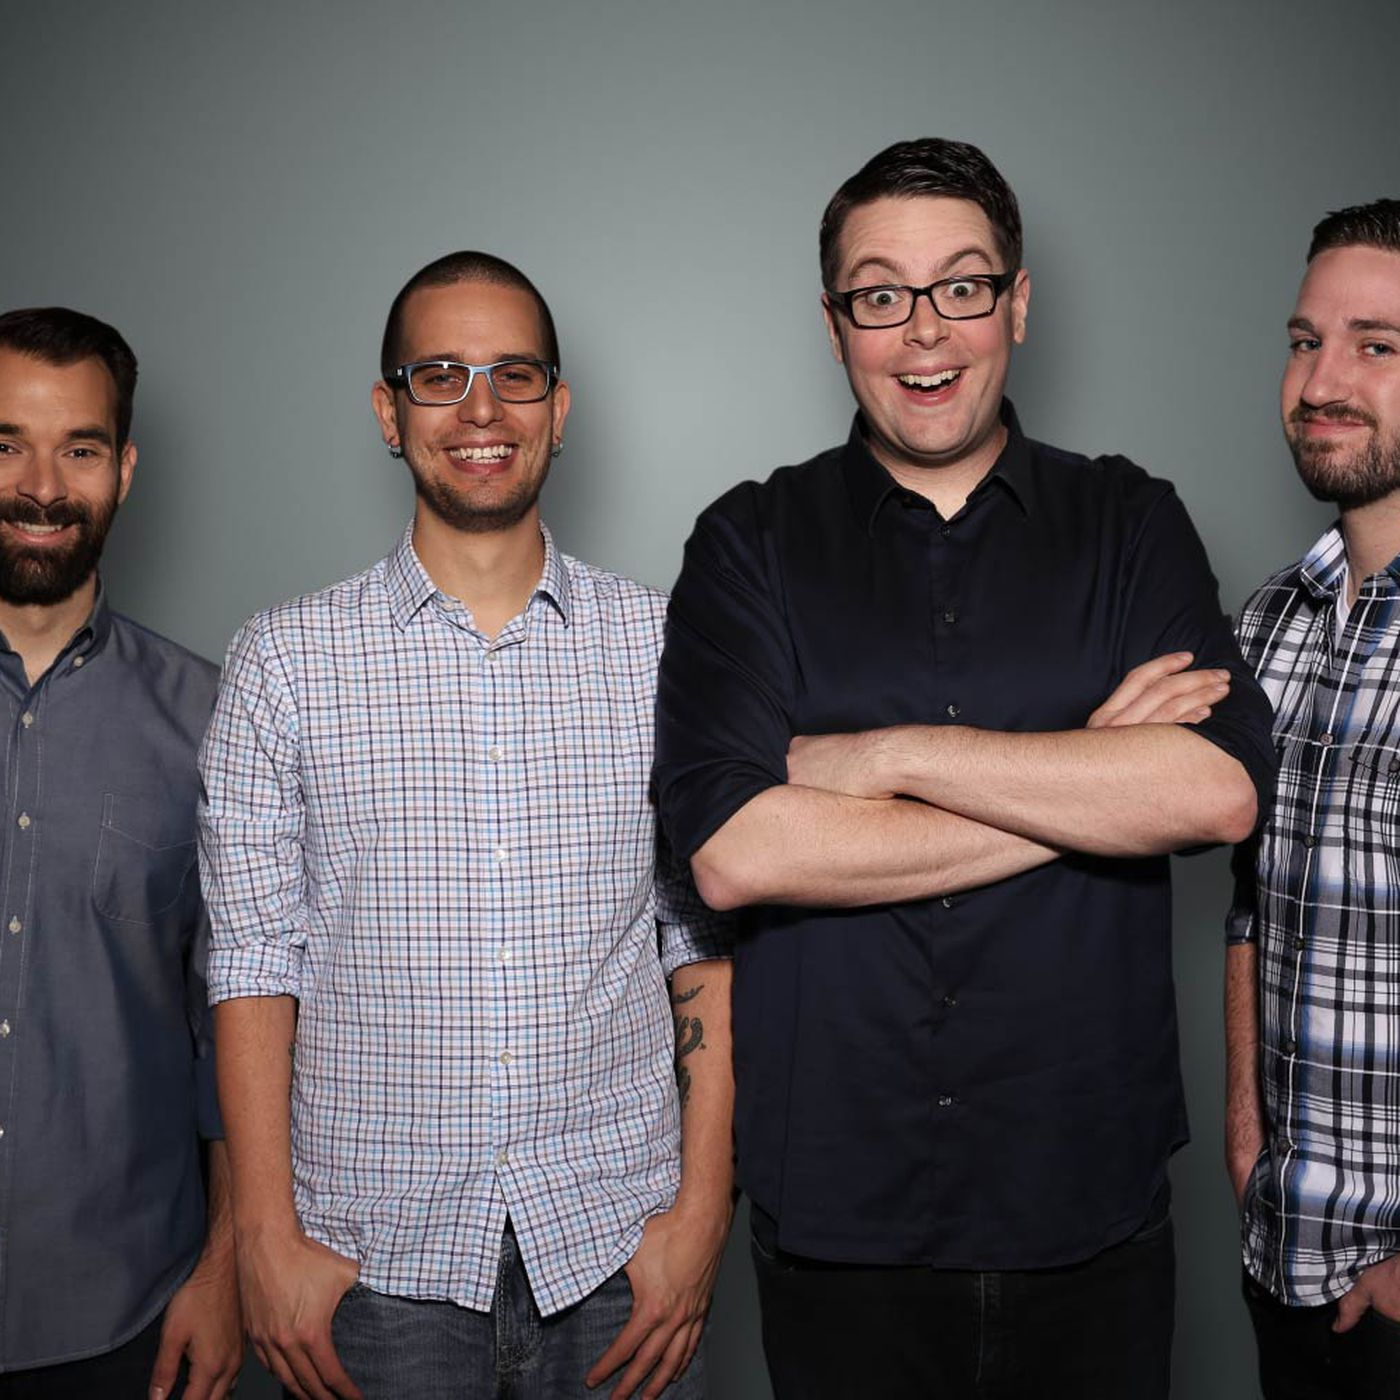 eb0cbca4c Greg Miller quits IGN for new venture - Polygon